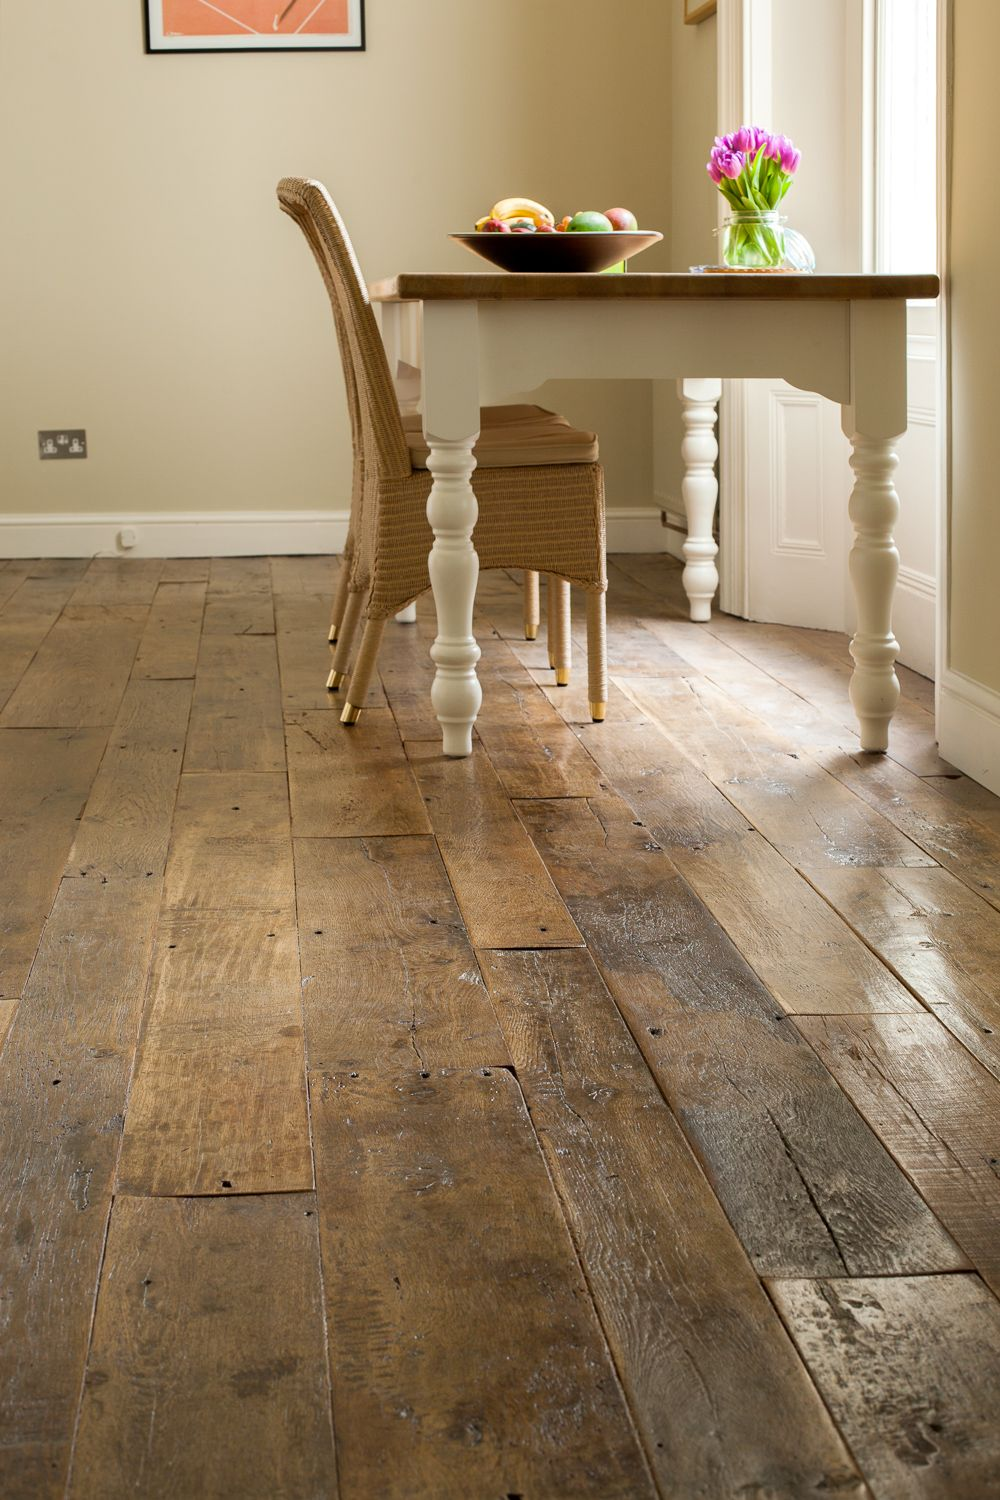 Following The Latest Trends Of Wood Flooring This Project Is A - What is the latest trend in flooring